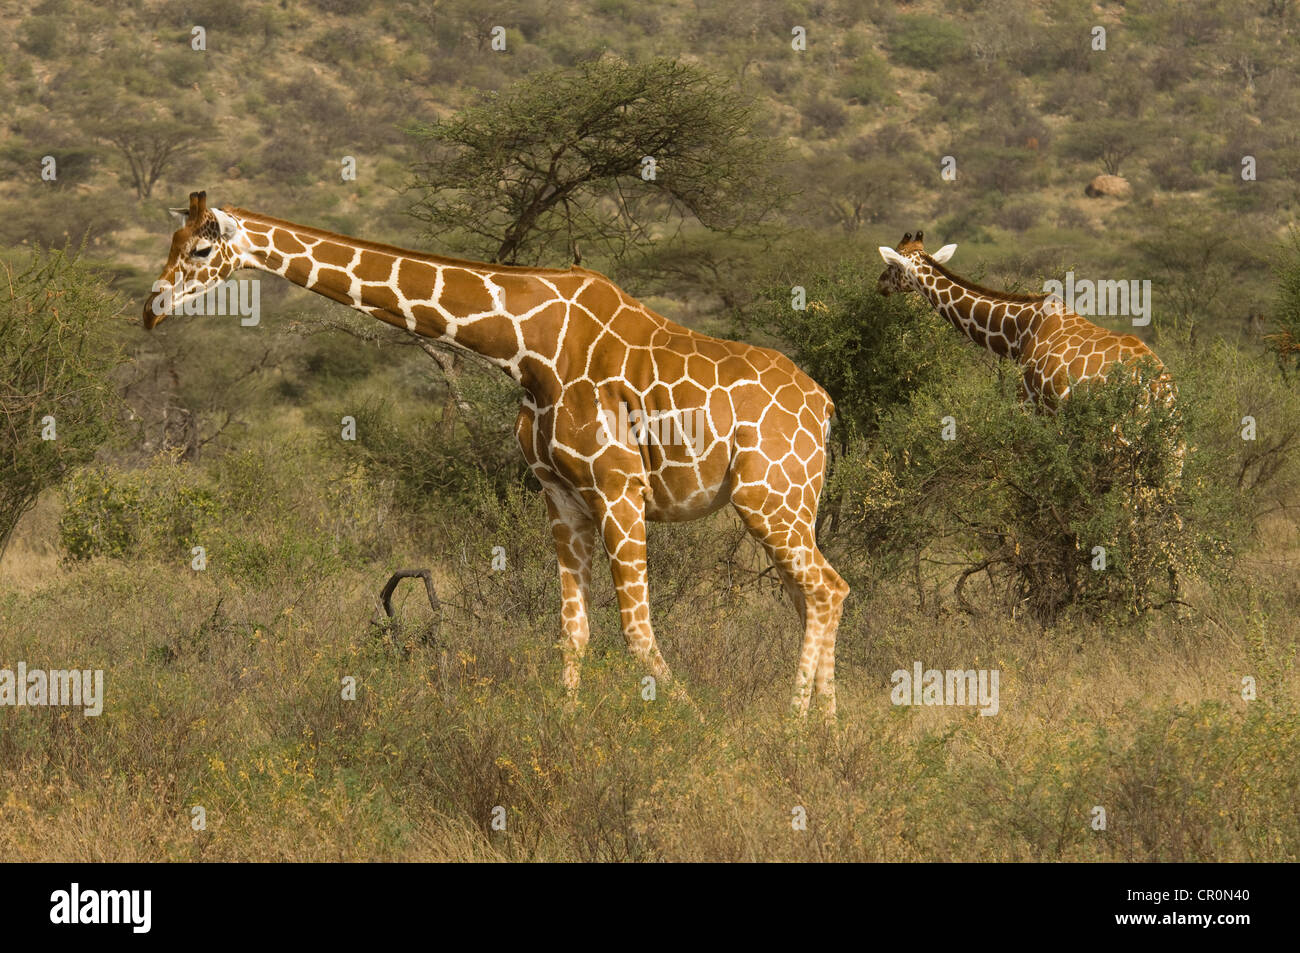 Two reticulated giraffes by acacias - Stock Image